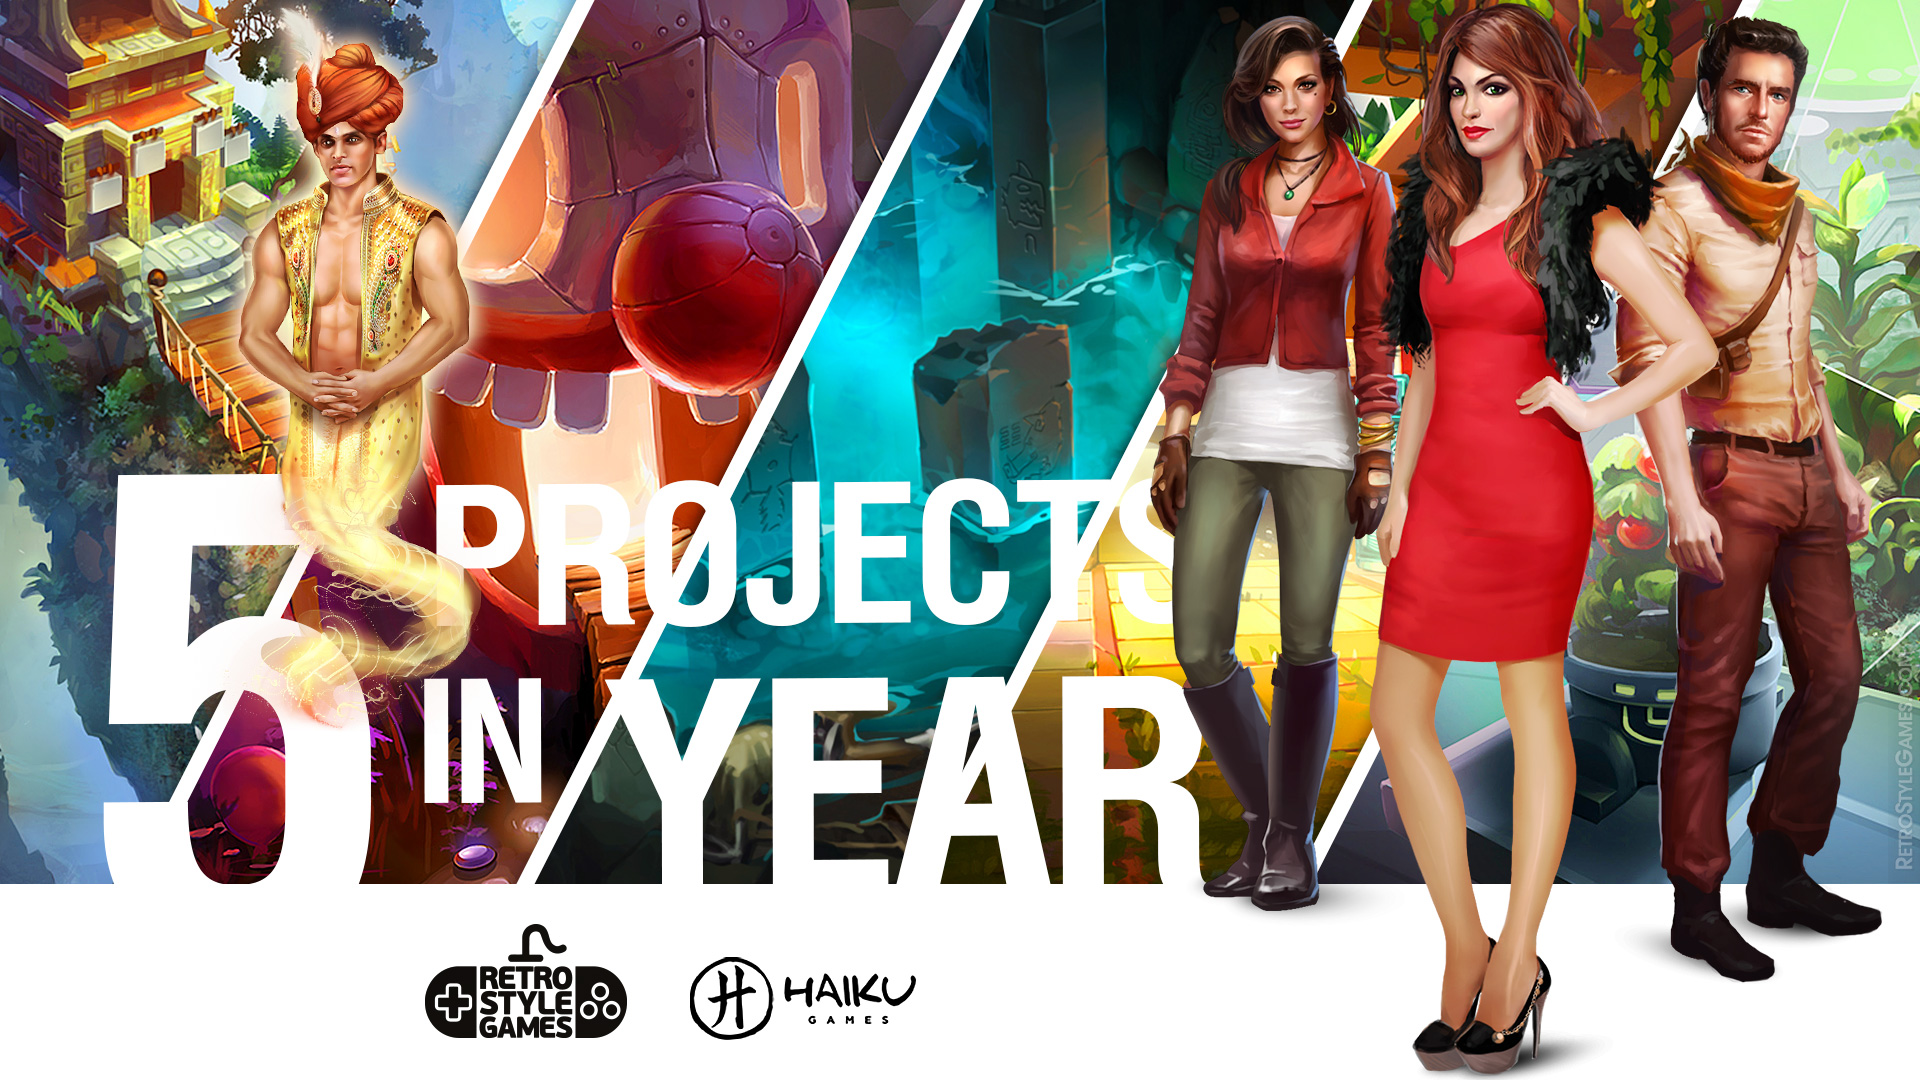 Character Concept Art 5 Games in Year